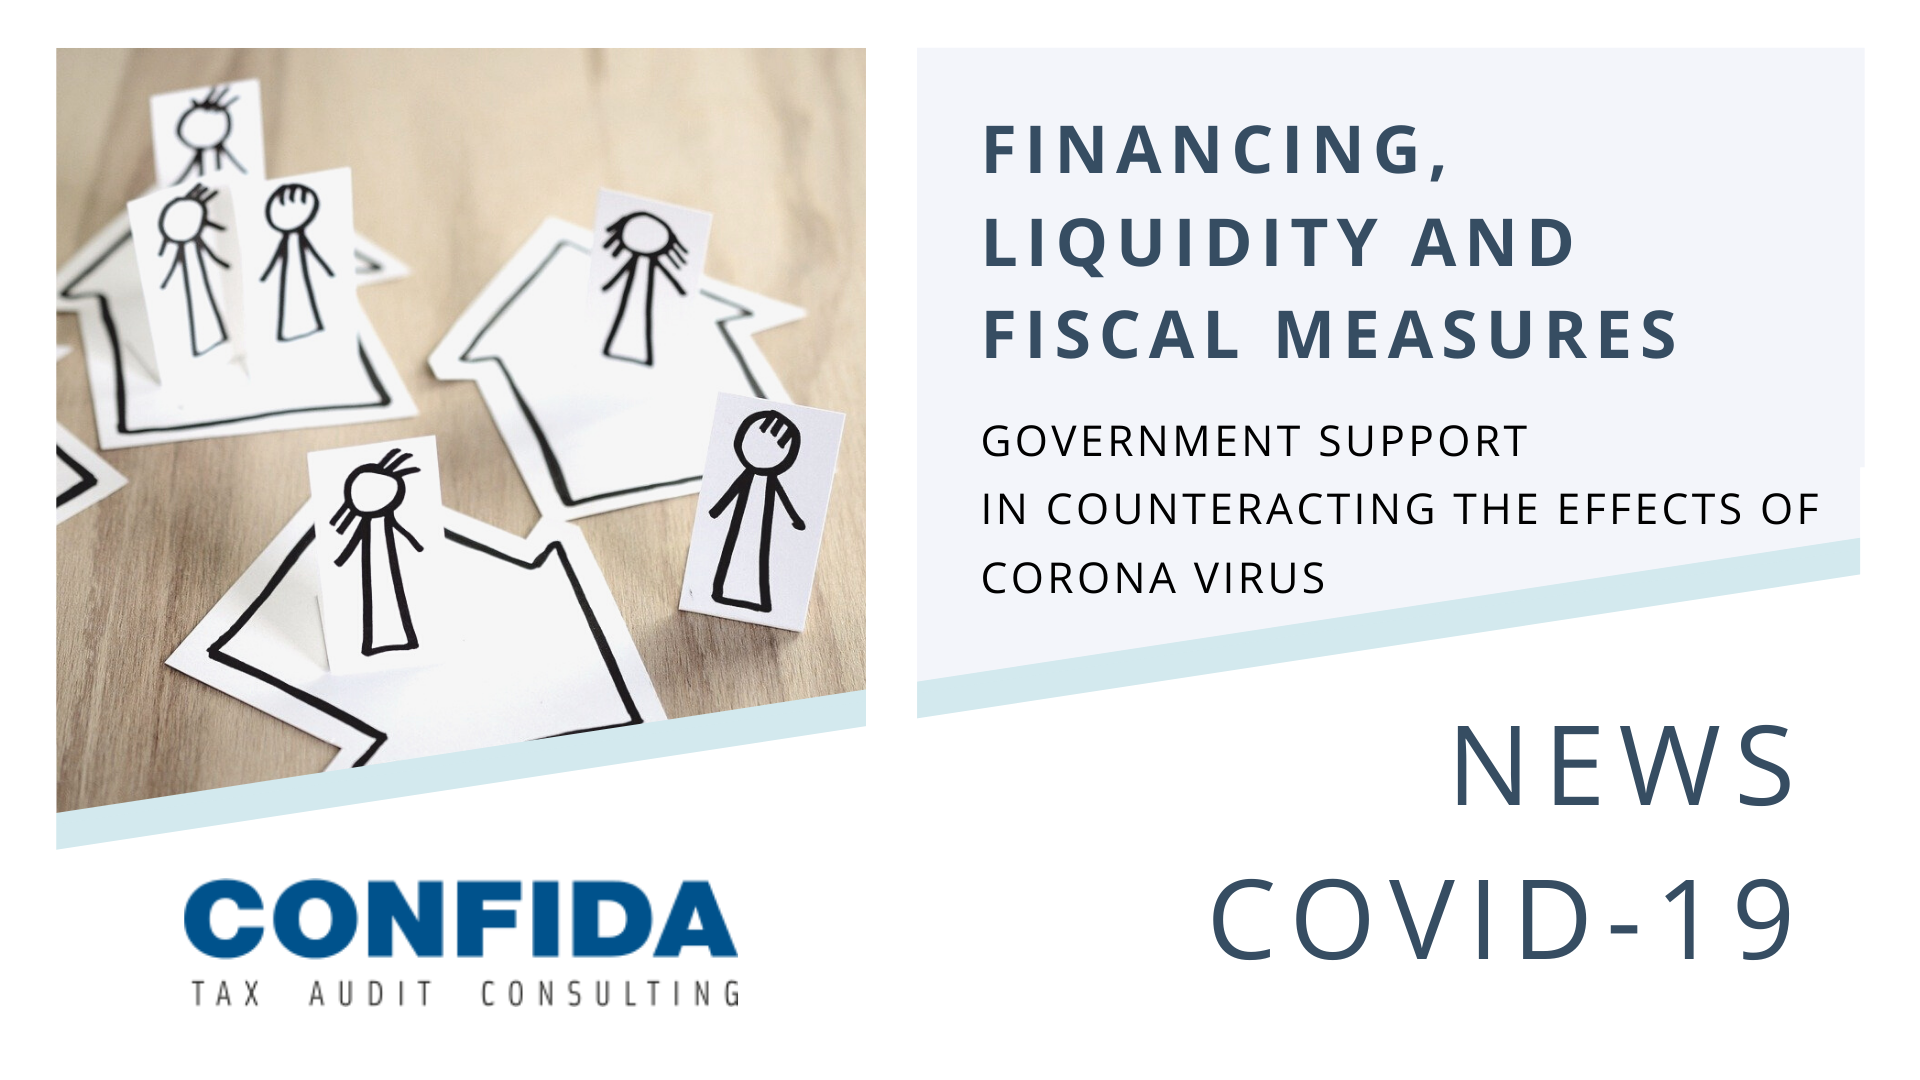 COVID-19: Financing, Liquidity and Fiscal Measures